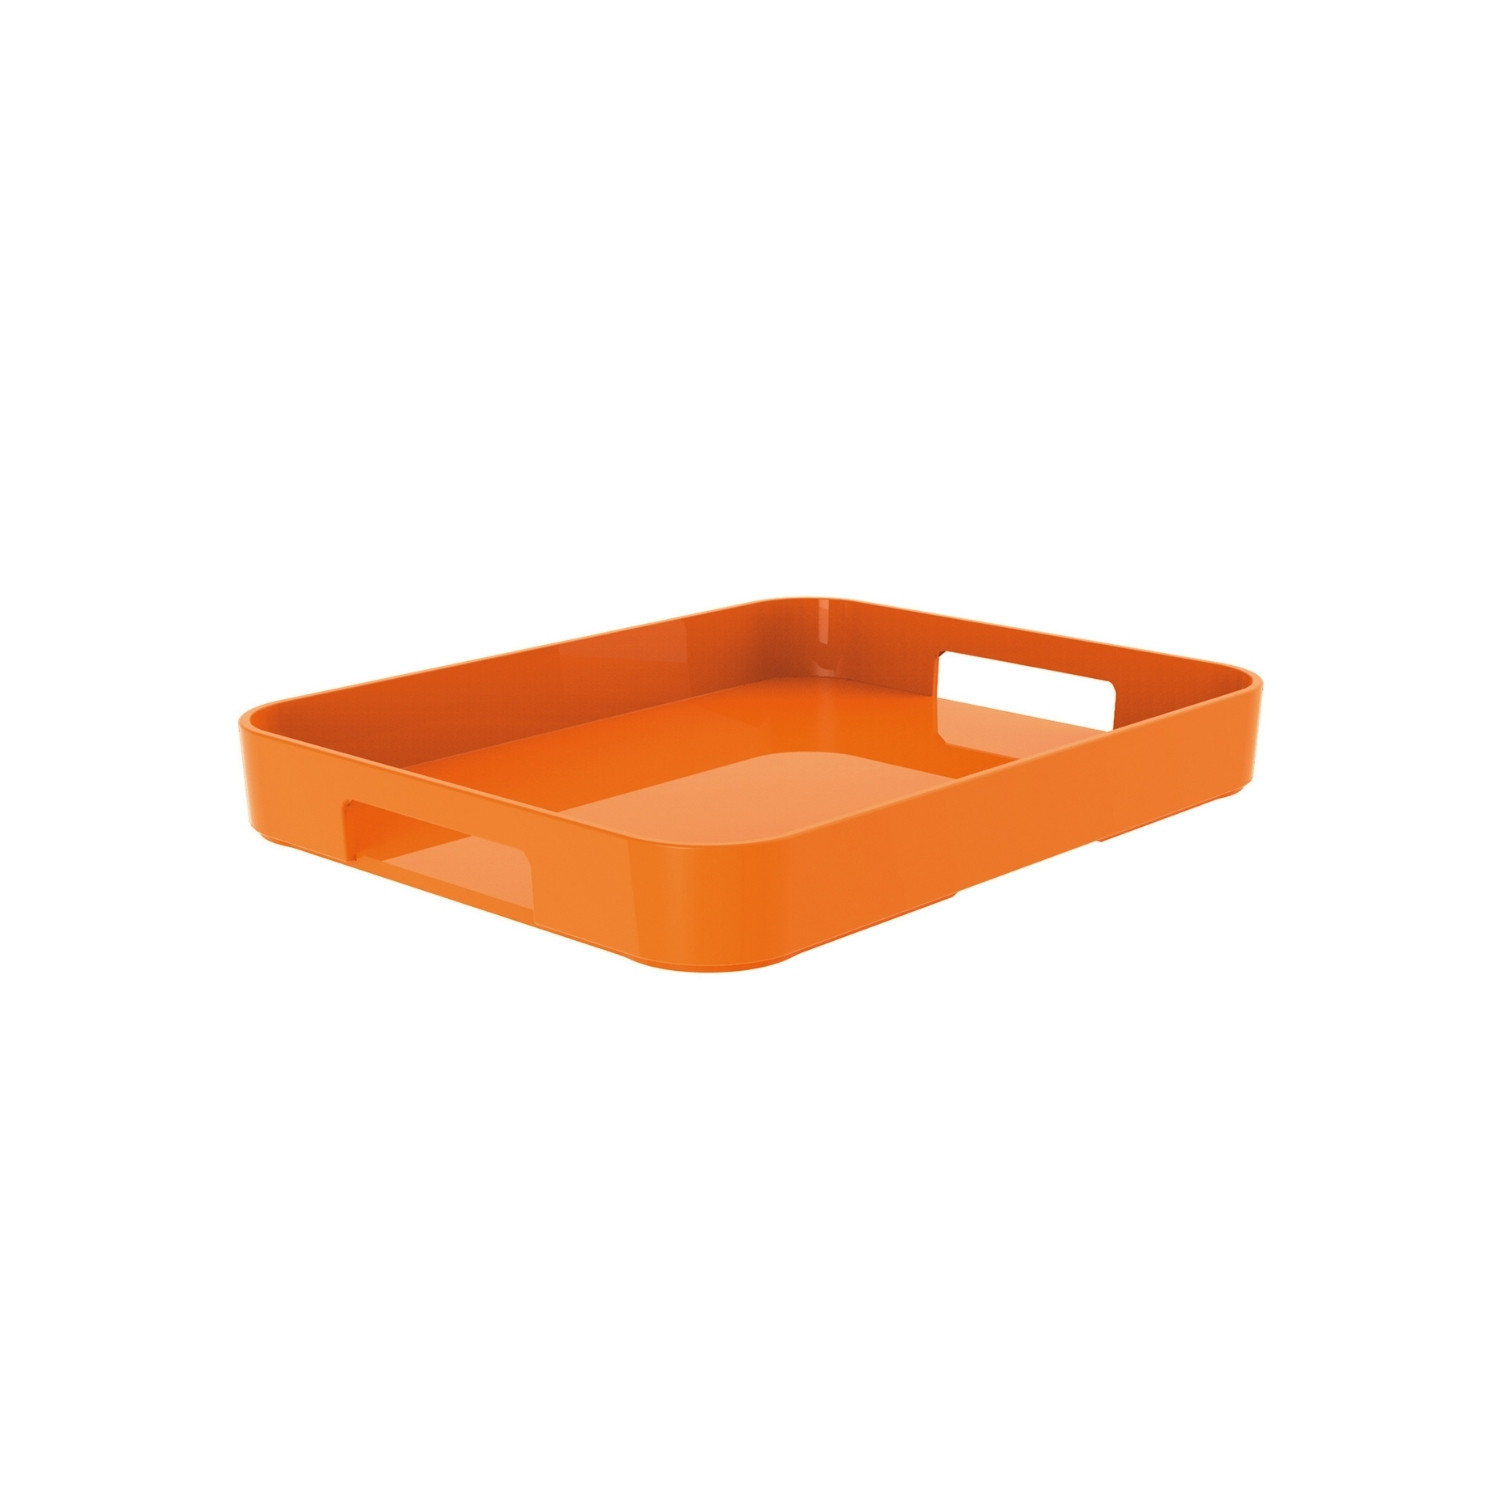 GALLERY - Plateau rectangulaire M - corail